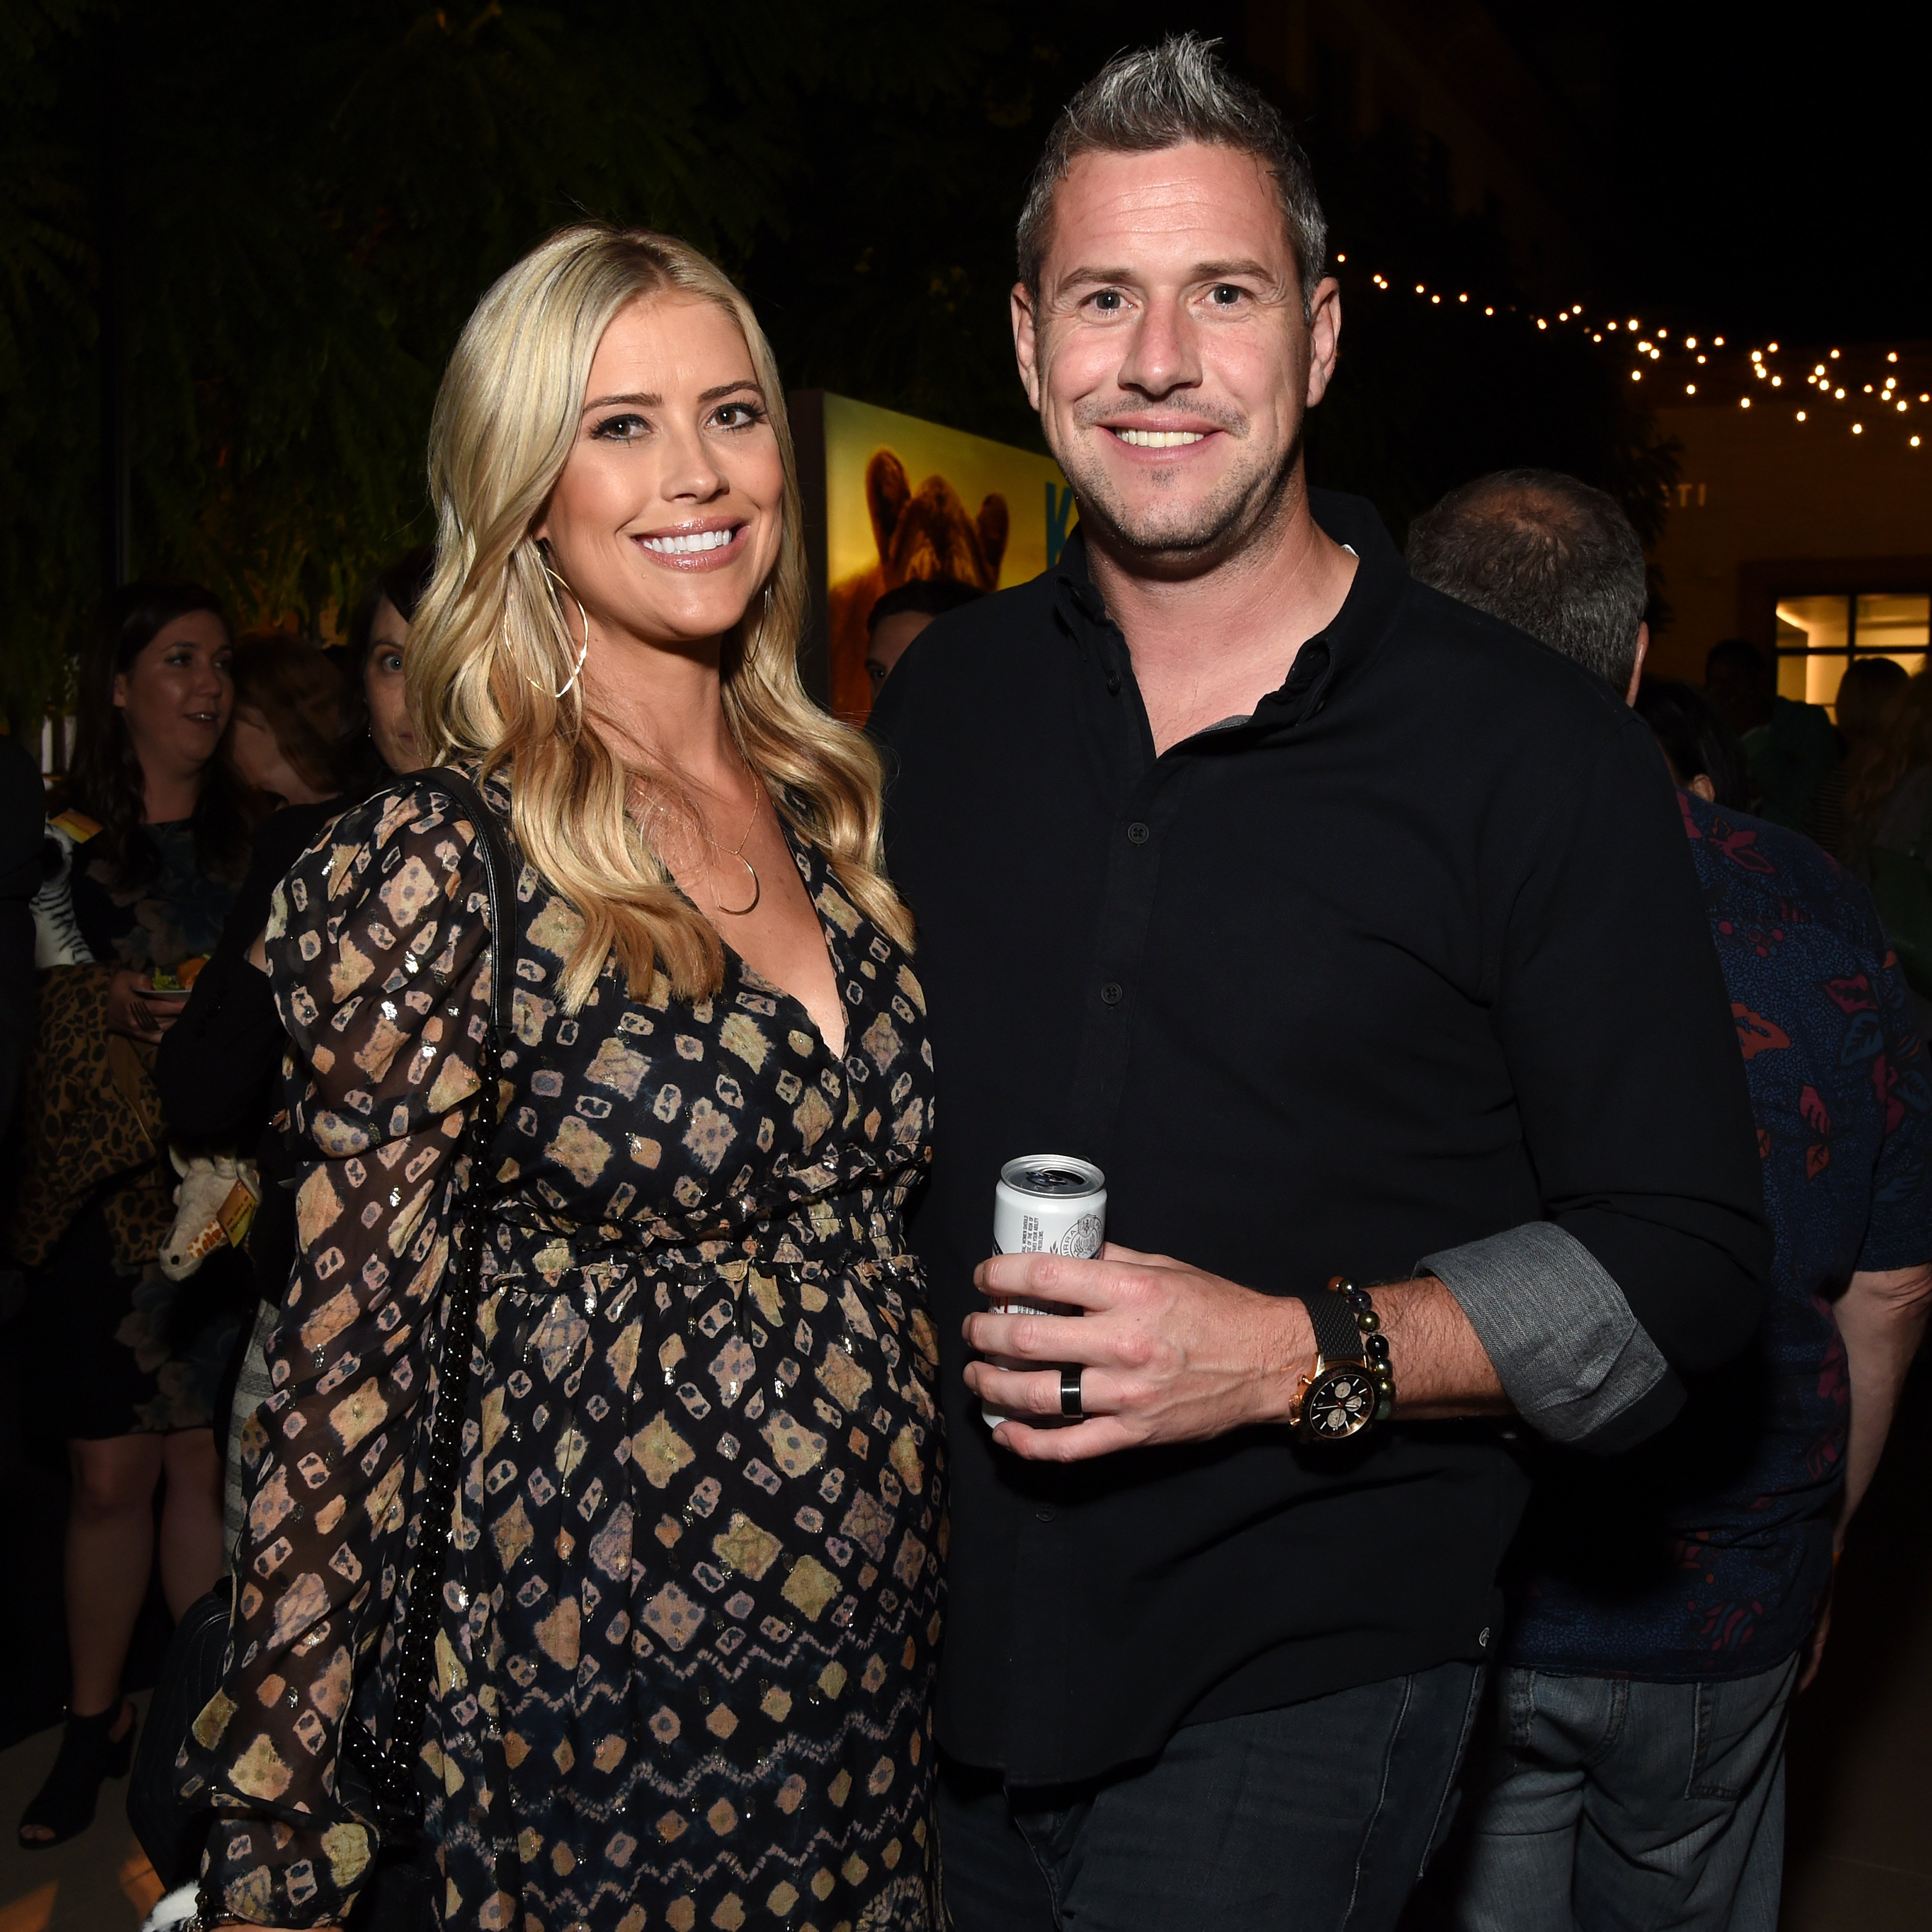 """Christina Anstead and Ant Anstead attend Discovery's """"Serengeti"""" premiere at Wallis Annenberg Center for the Performing Arts 